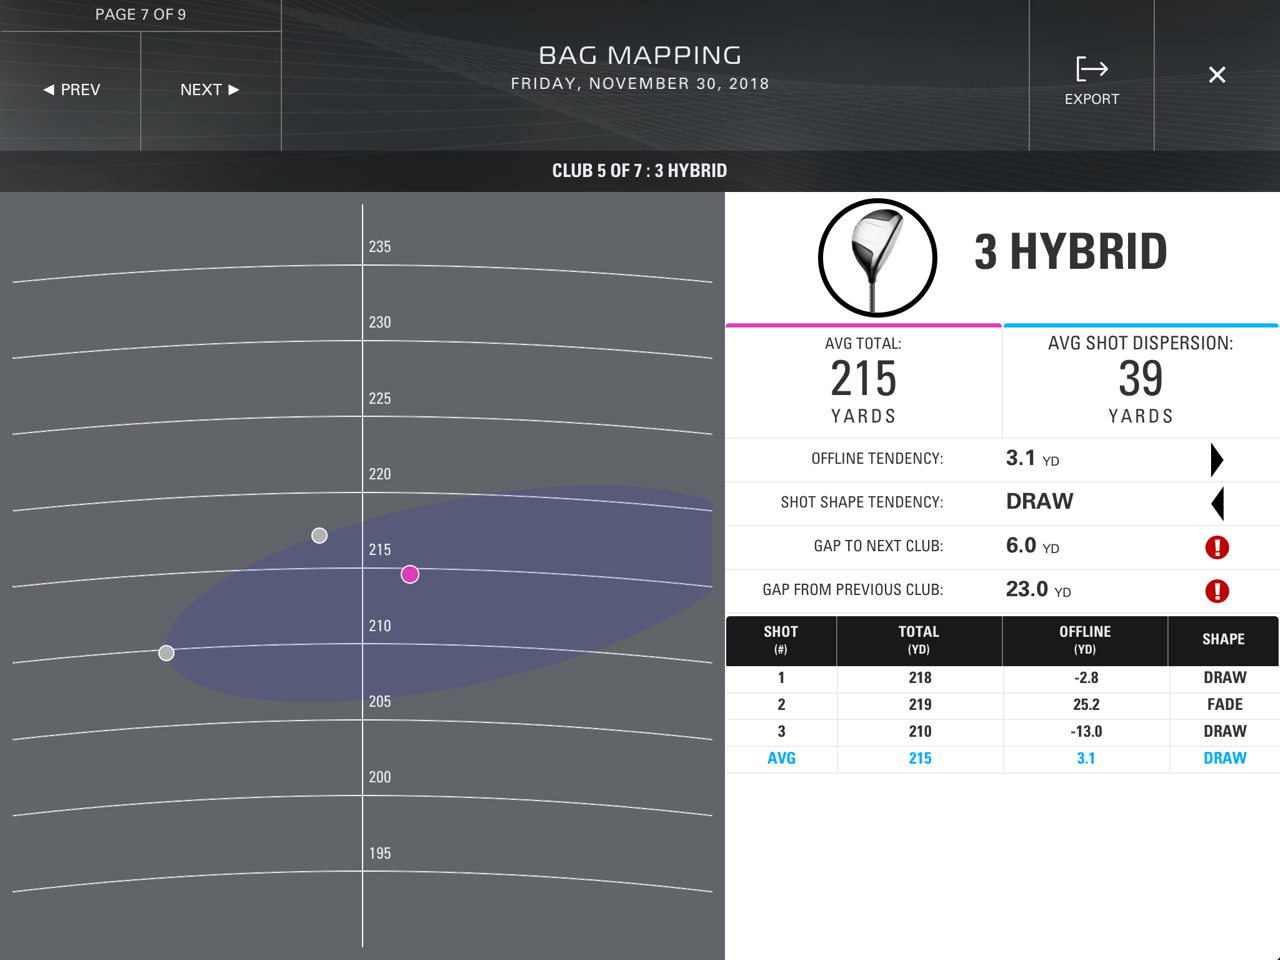 golf fitting bag mapping 1